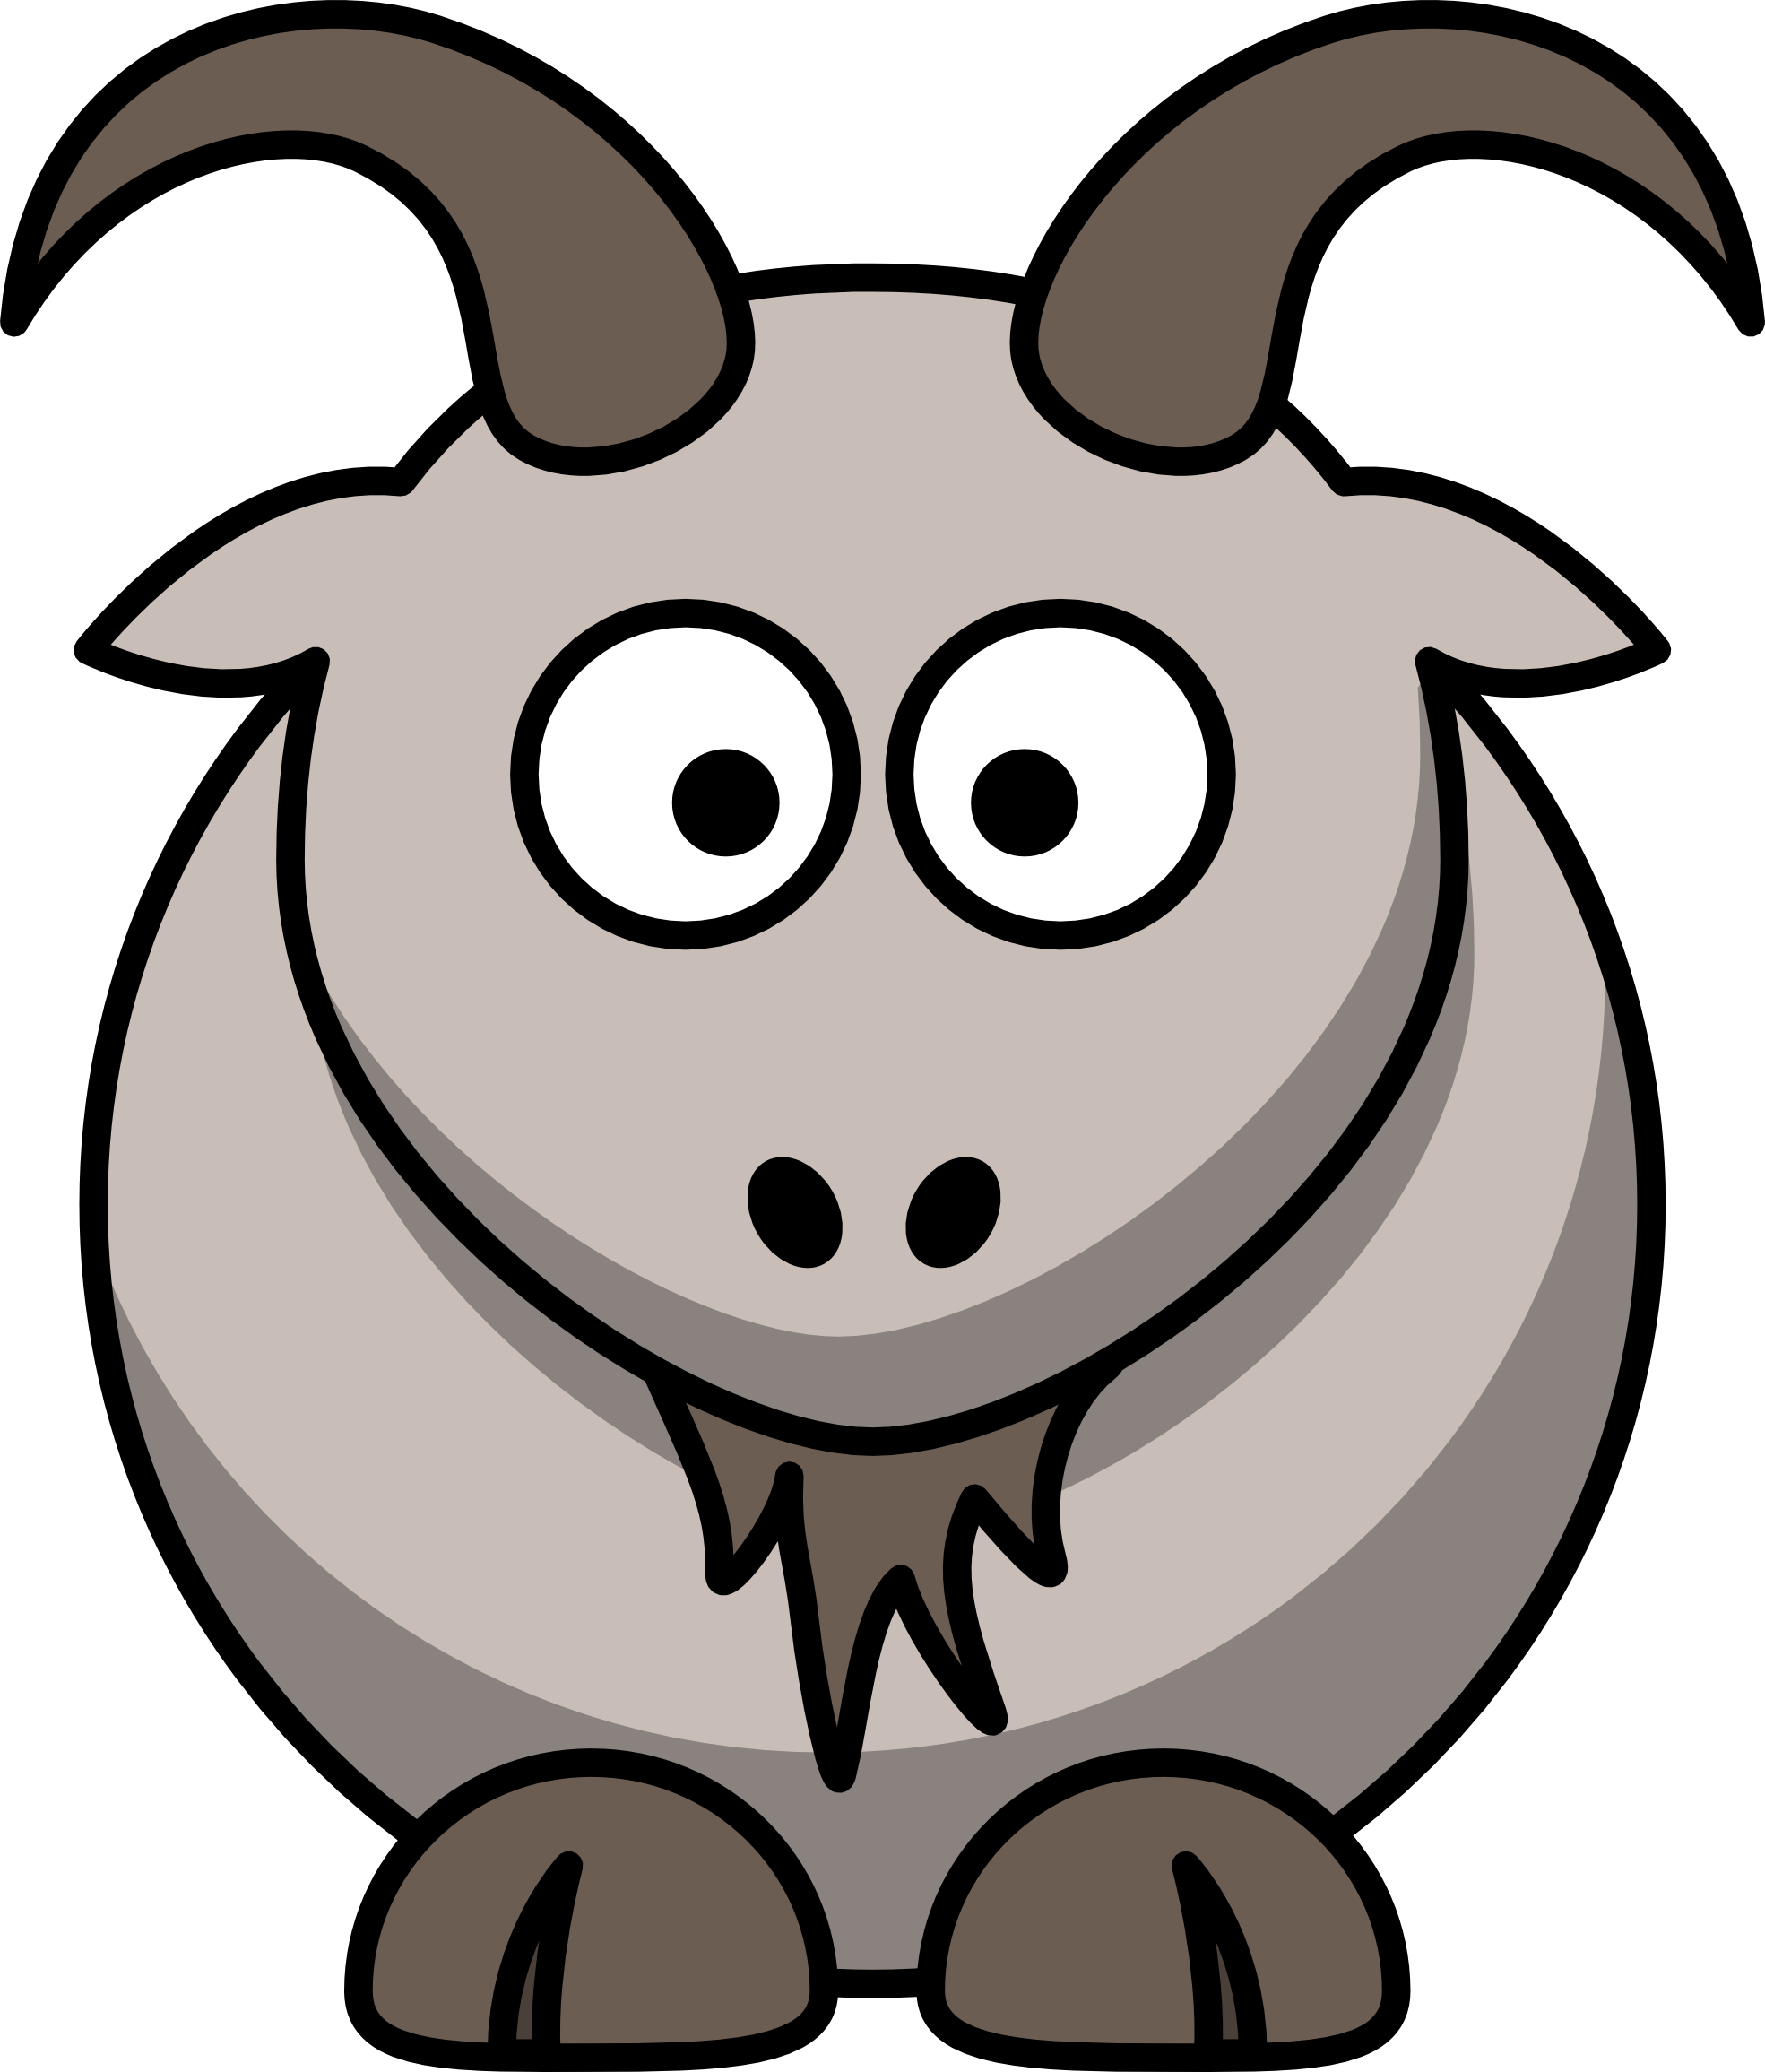 Drawing goats cute. Animal clipart goat borders